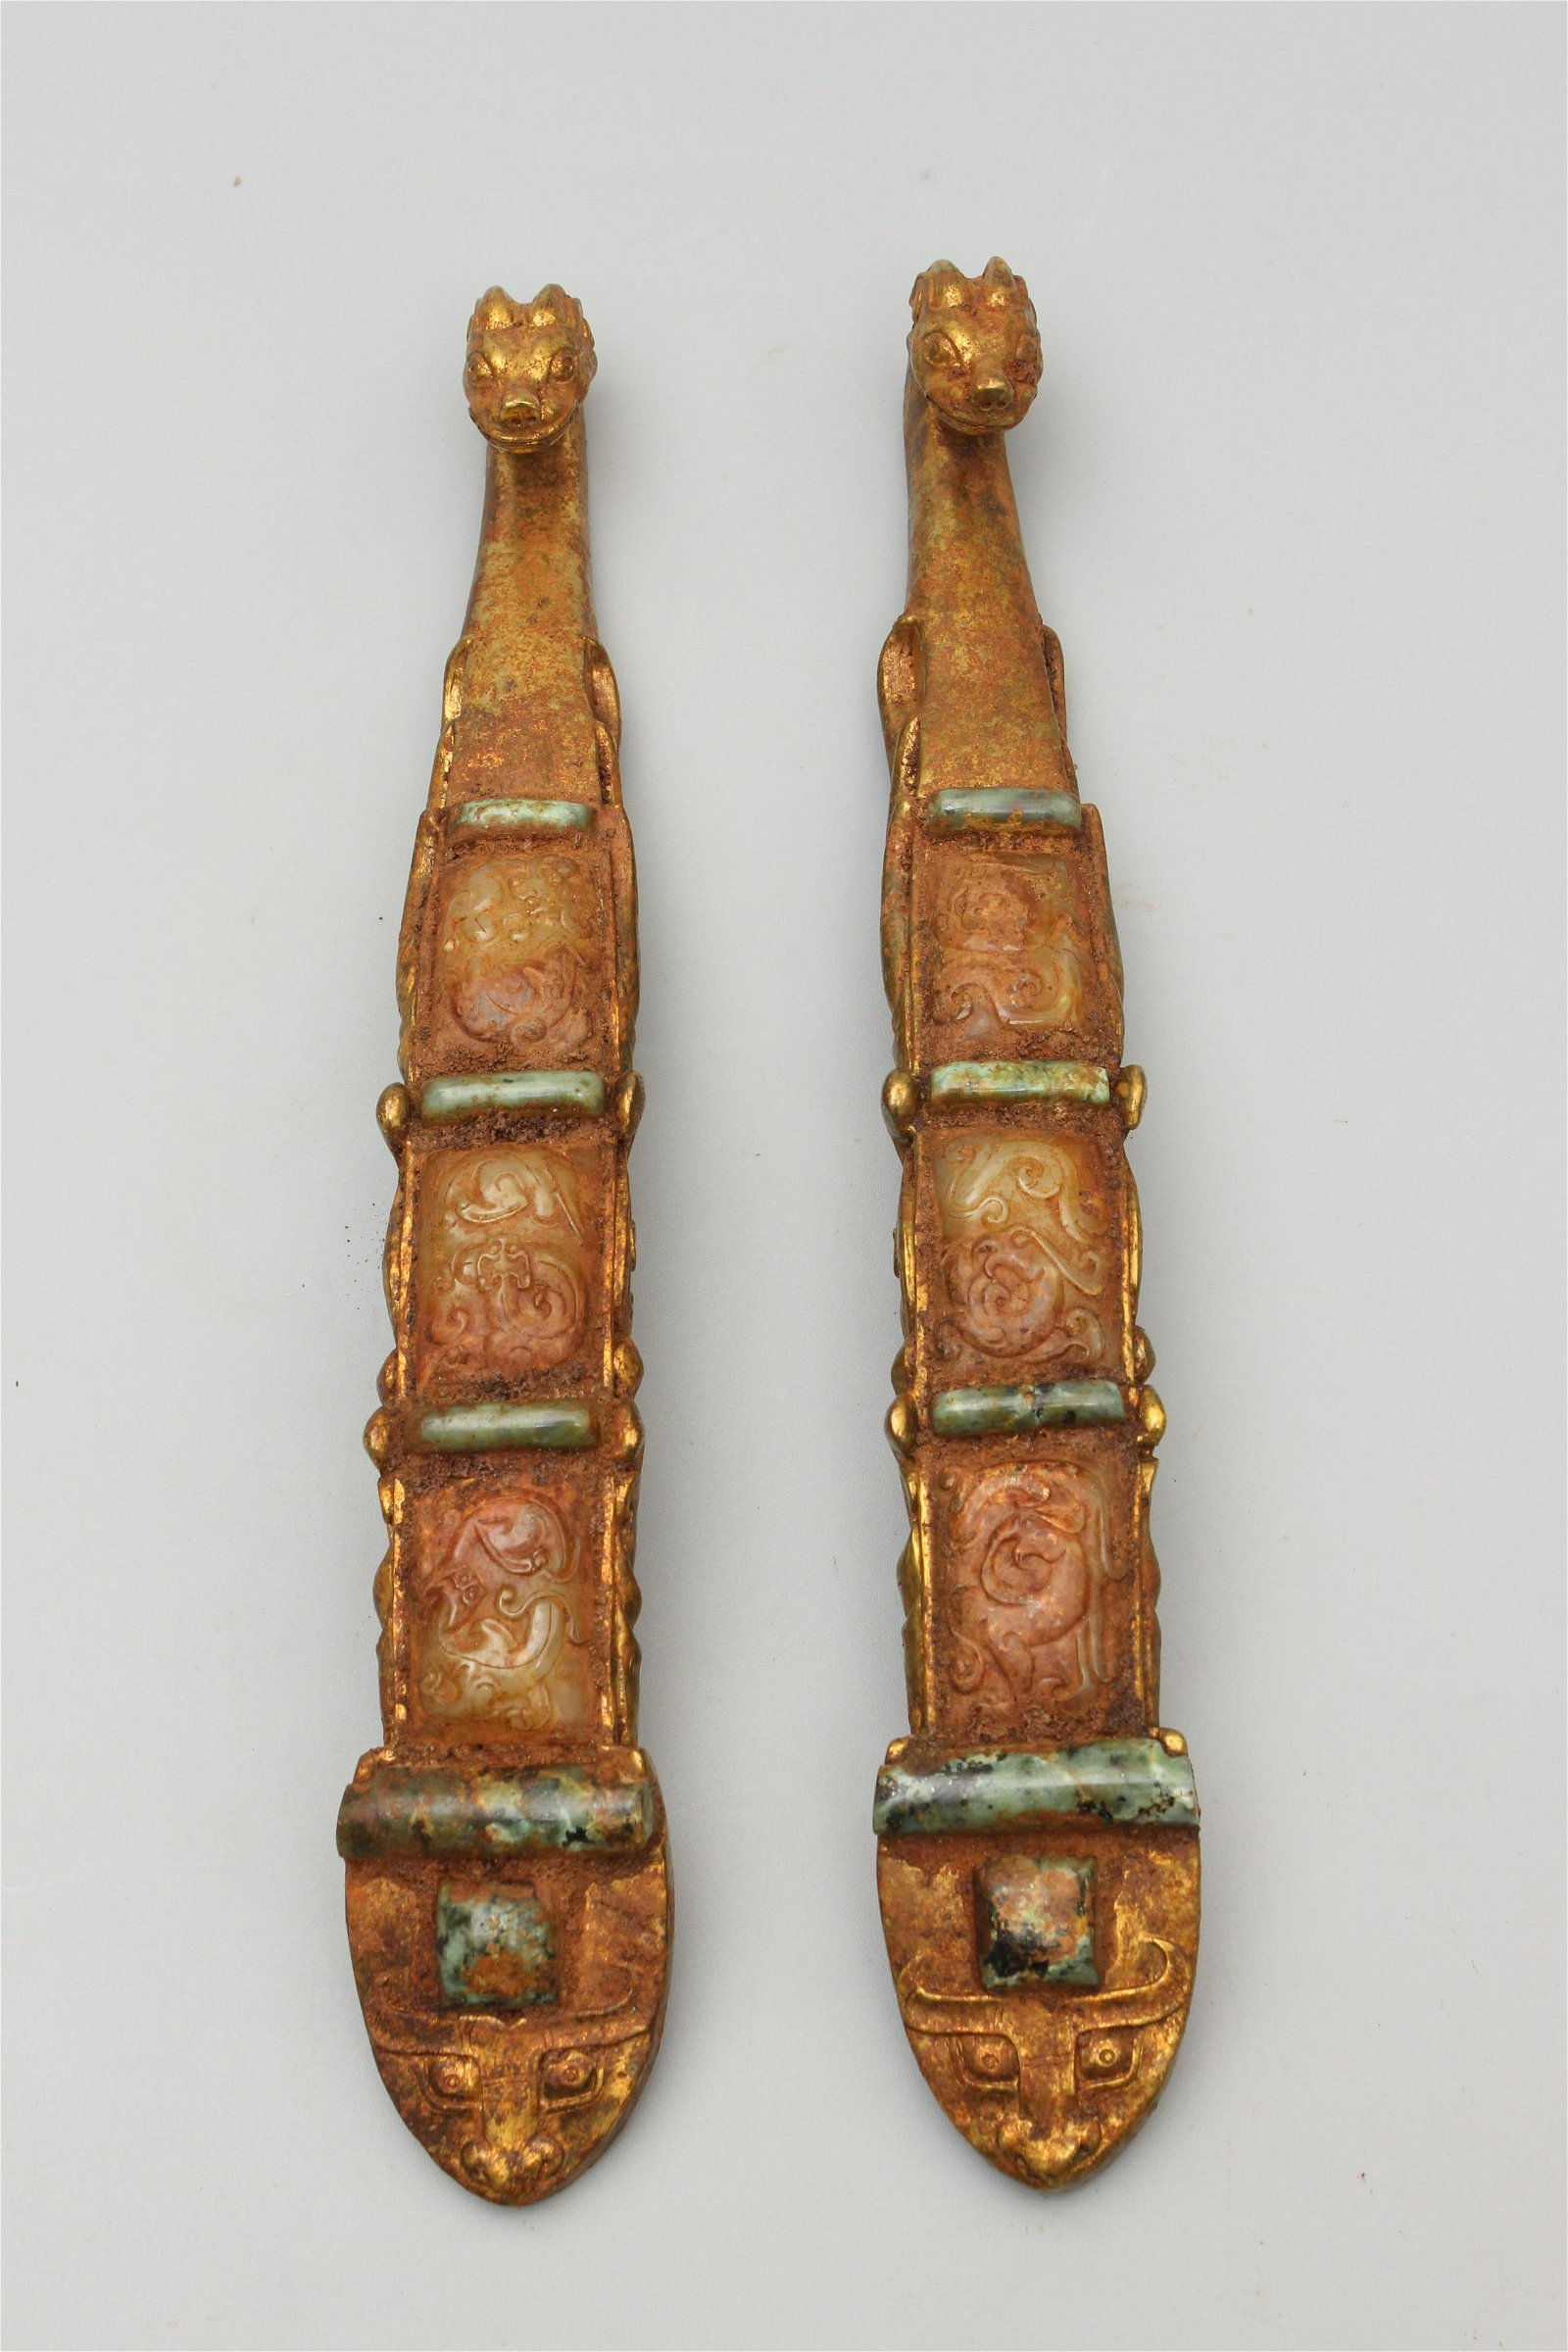 A Pair of Chinese Jade-Inlaid Gilt Bronze Belt Buckles